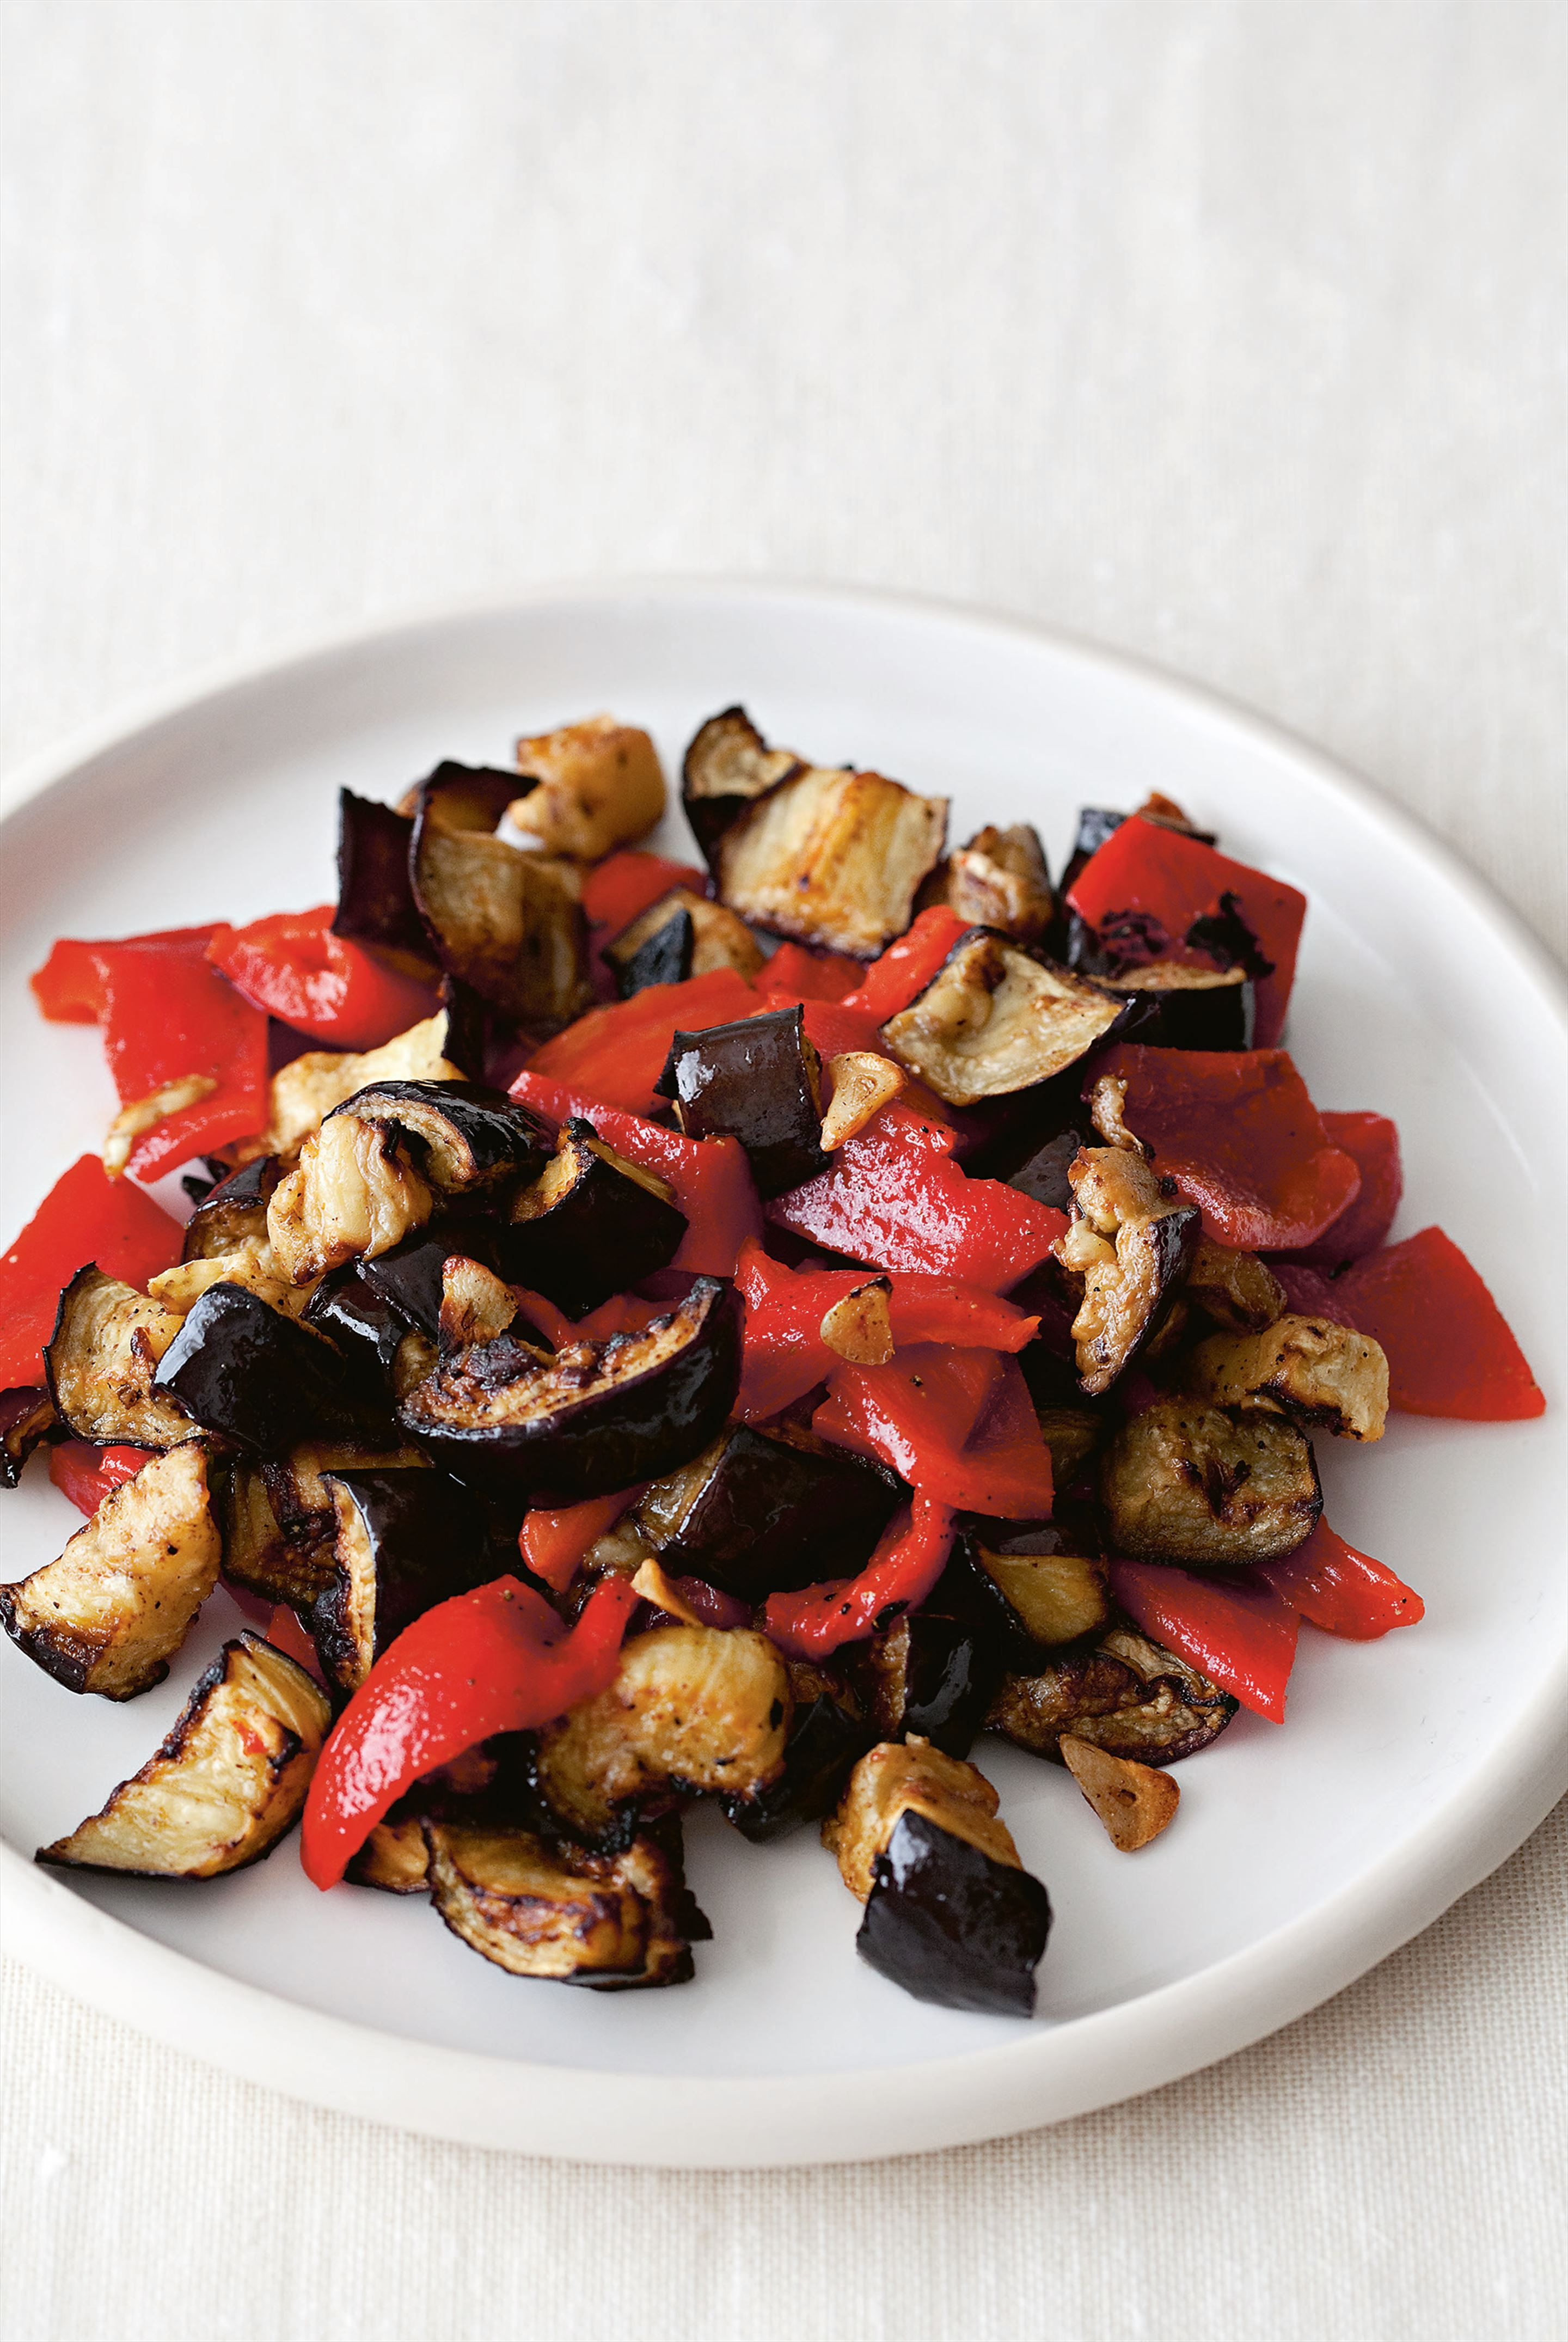 Aubergine & sweet pepper salad